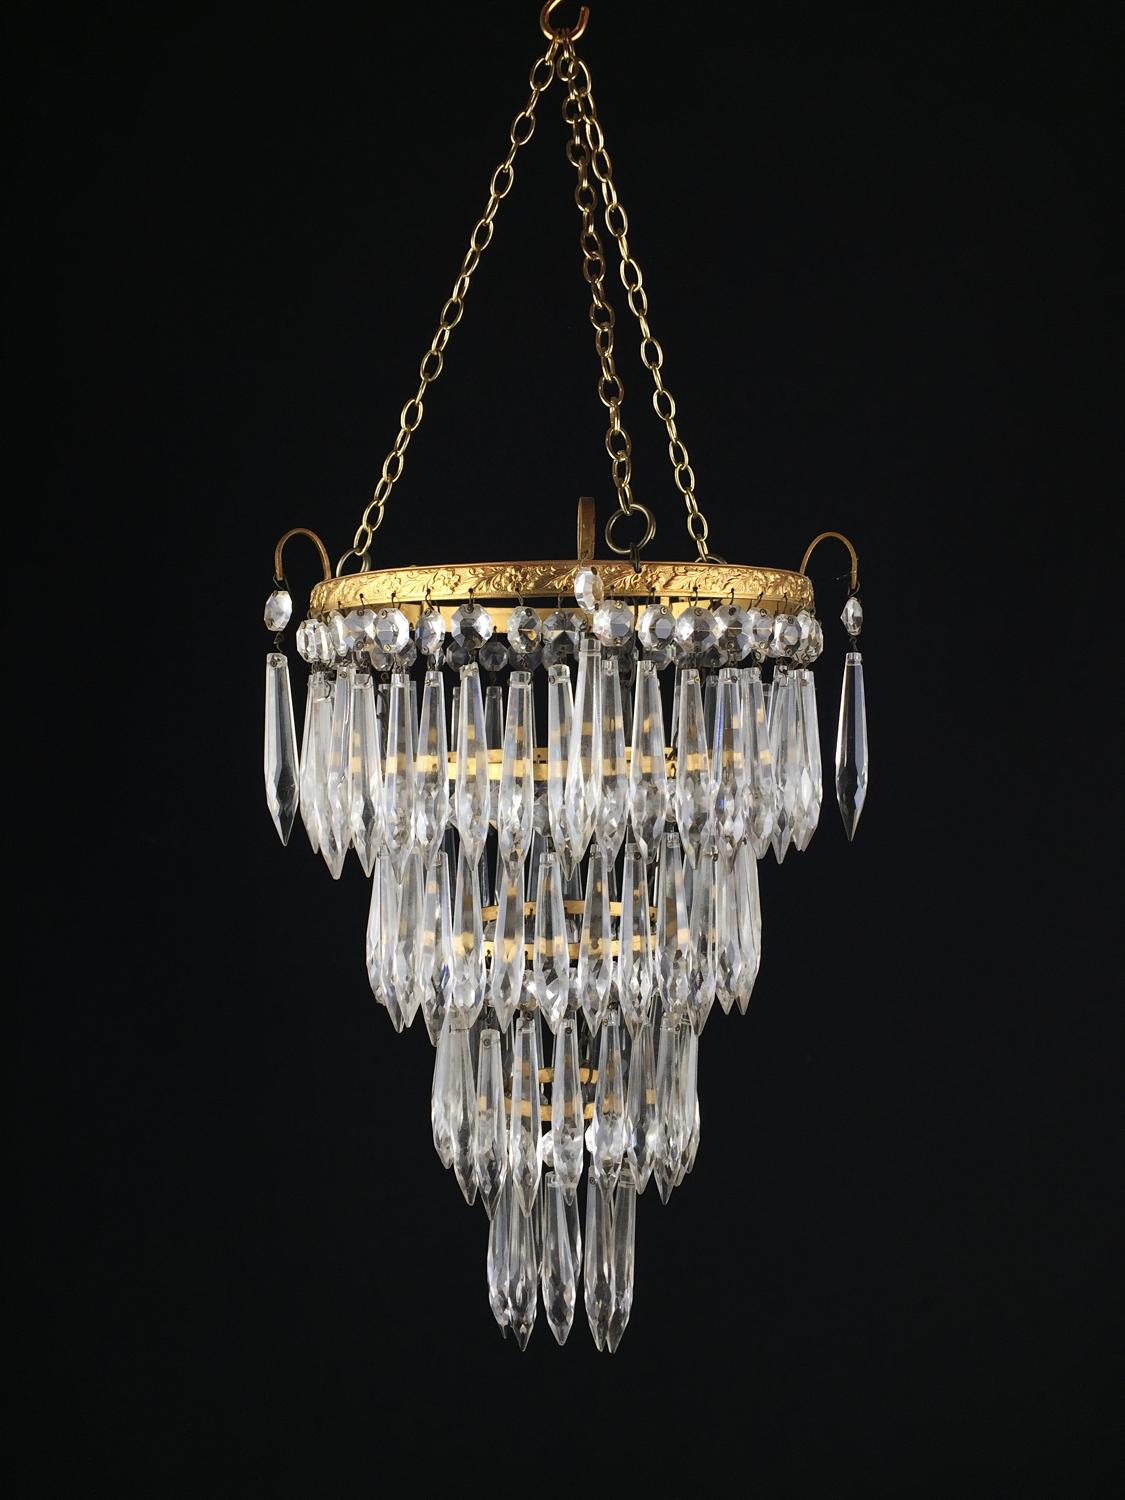 An Edwardian ceiling light